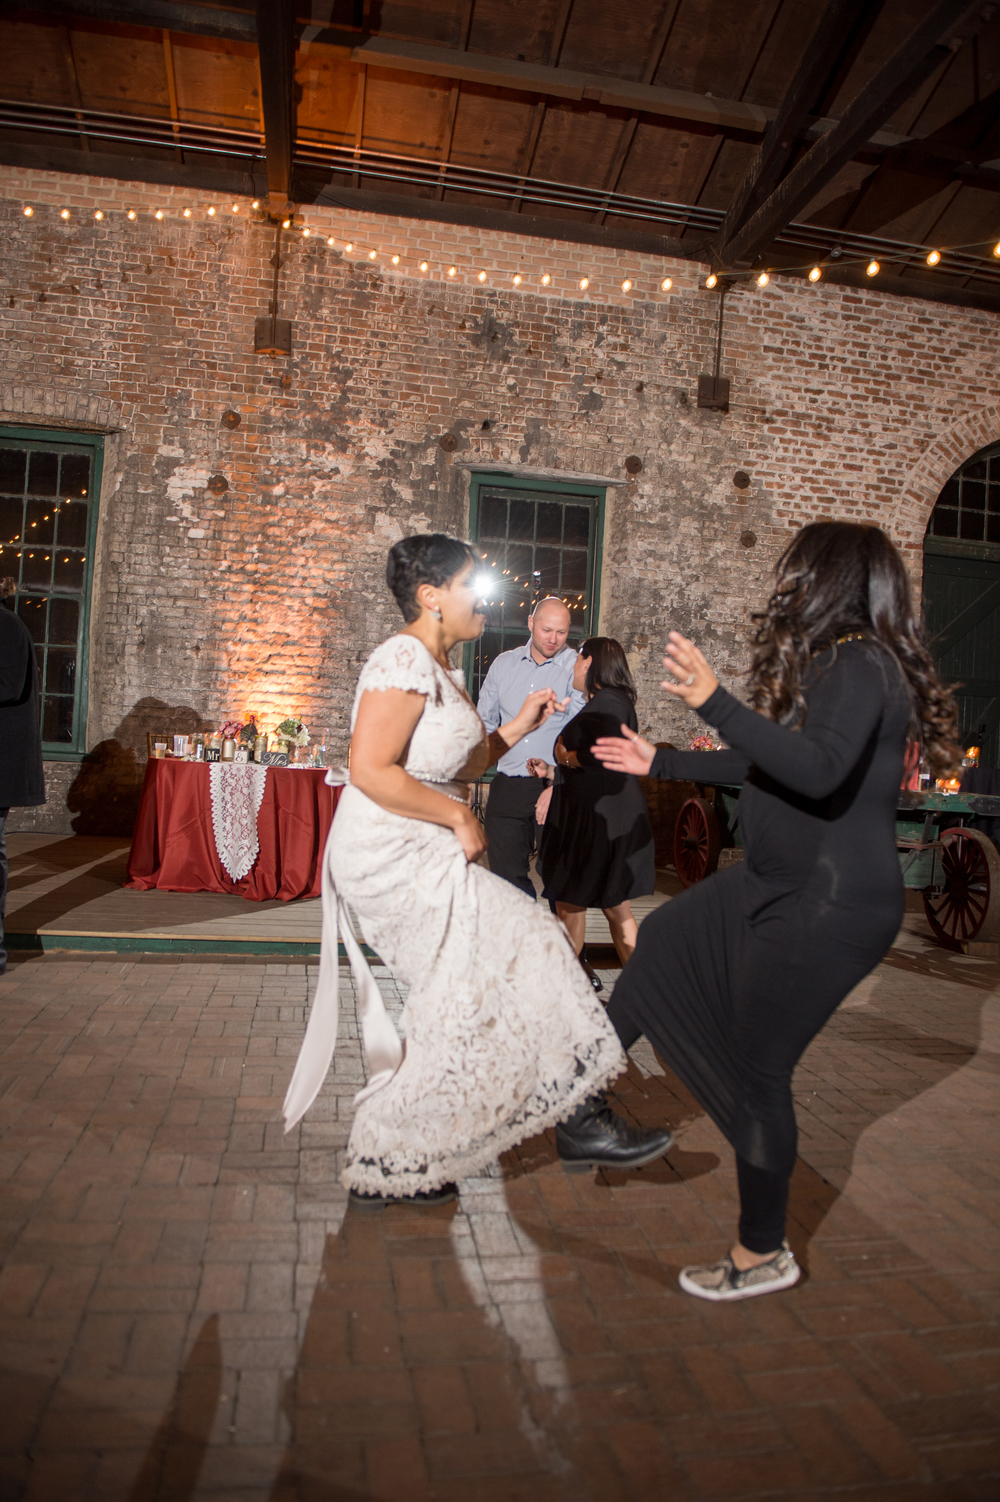 capree-kyle-la-vega-fotografie-roundhouse-railroad-museum-wedding-savannah-wedding-planner-rustic-savannah-wedding-museum-wedding-ivory-and-beau-savannah-bridal-boutique-savannah-weddings-savannah-event-designer-savannah-florist-23.jpg